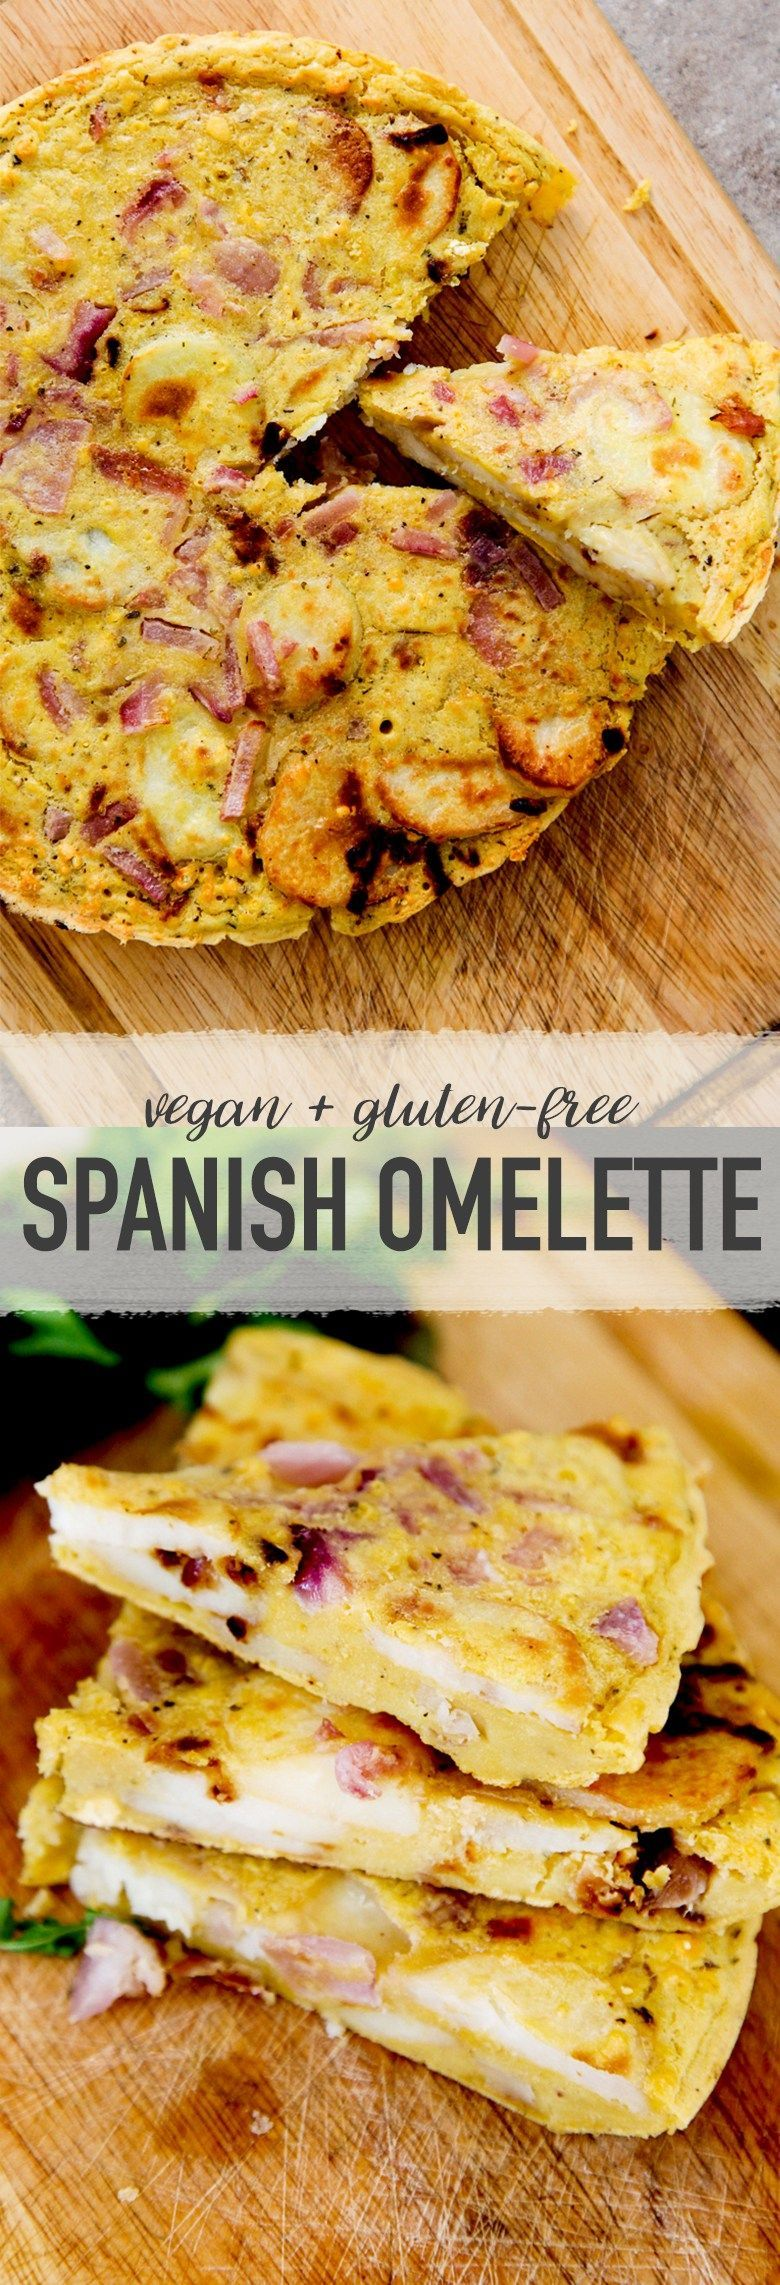 Don't miss this vegan spanish omelette—made from chickpea flour! It's so simple, while also being delicious and comforting! miss this vegan spanish omelette—made from chickpea flour! It's so simple, while also being delicious and comforting!